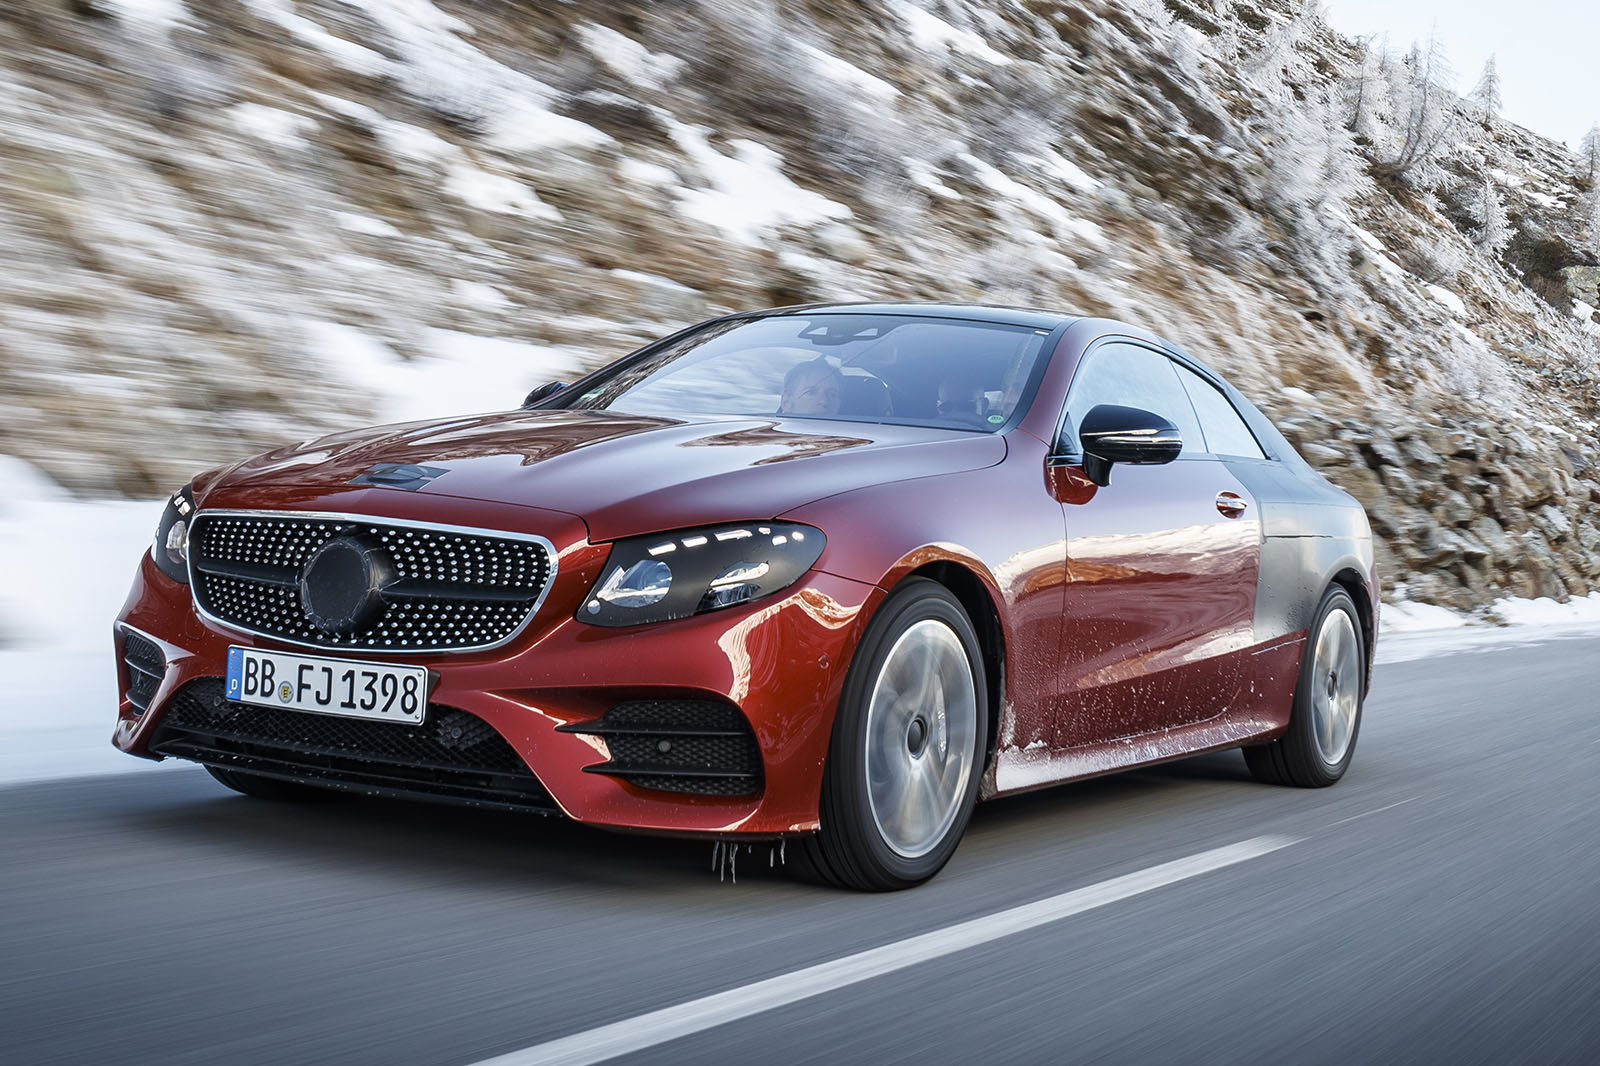 hight resolution of 2017 mercedes benz e class coupe we take a ride